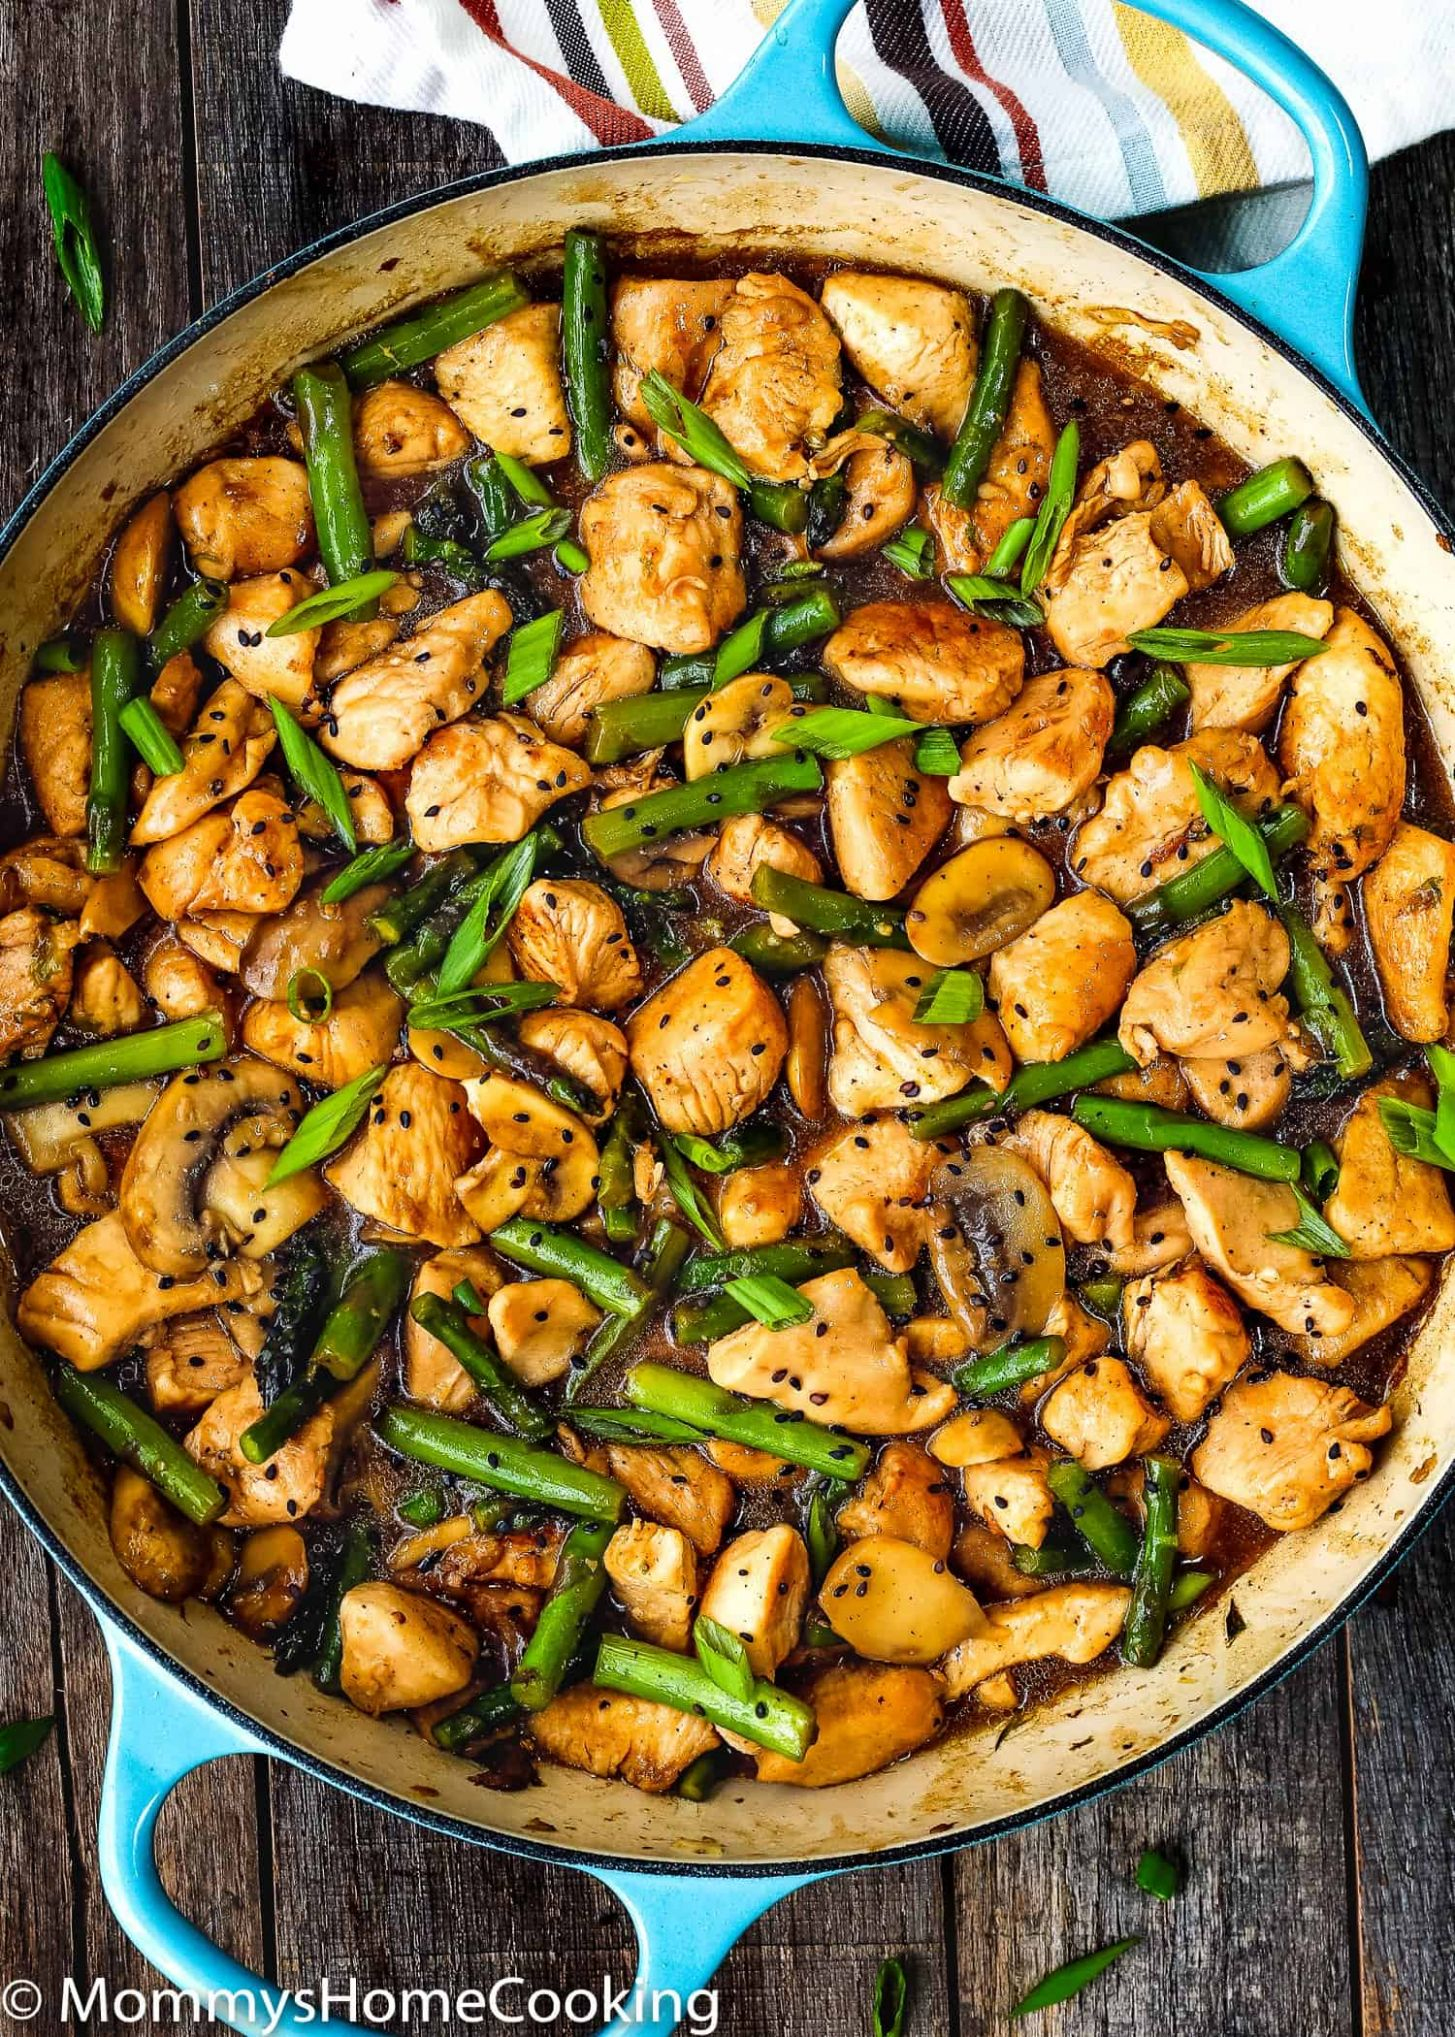 Easy Healthy Chicken and Asparagus Skillet - Healthy Recipes Quick